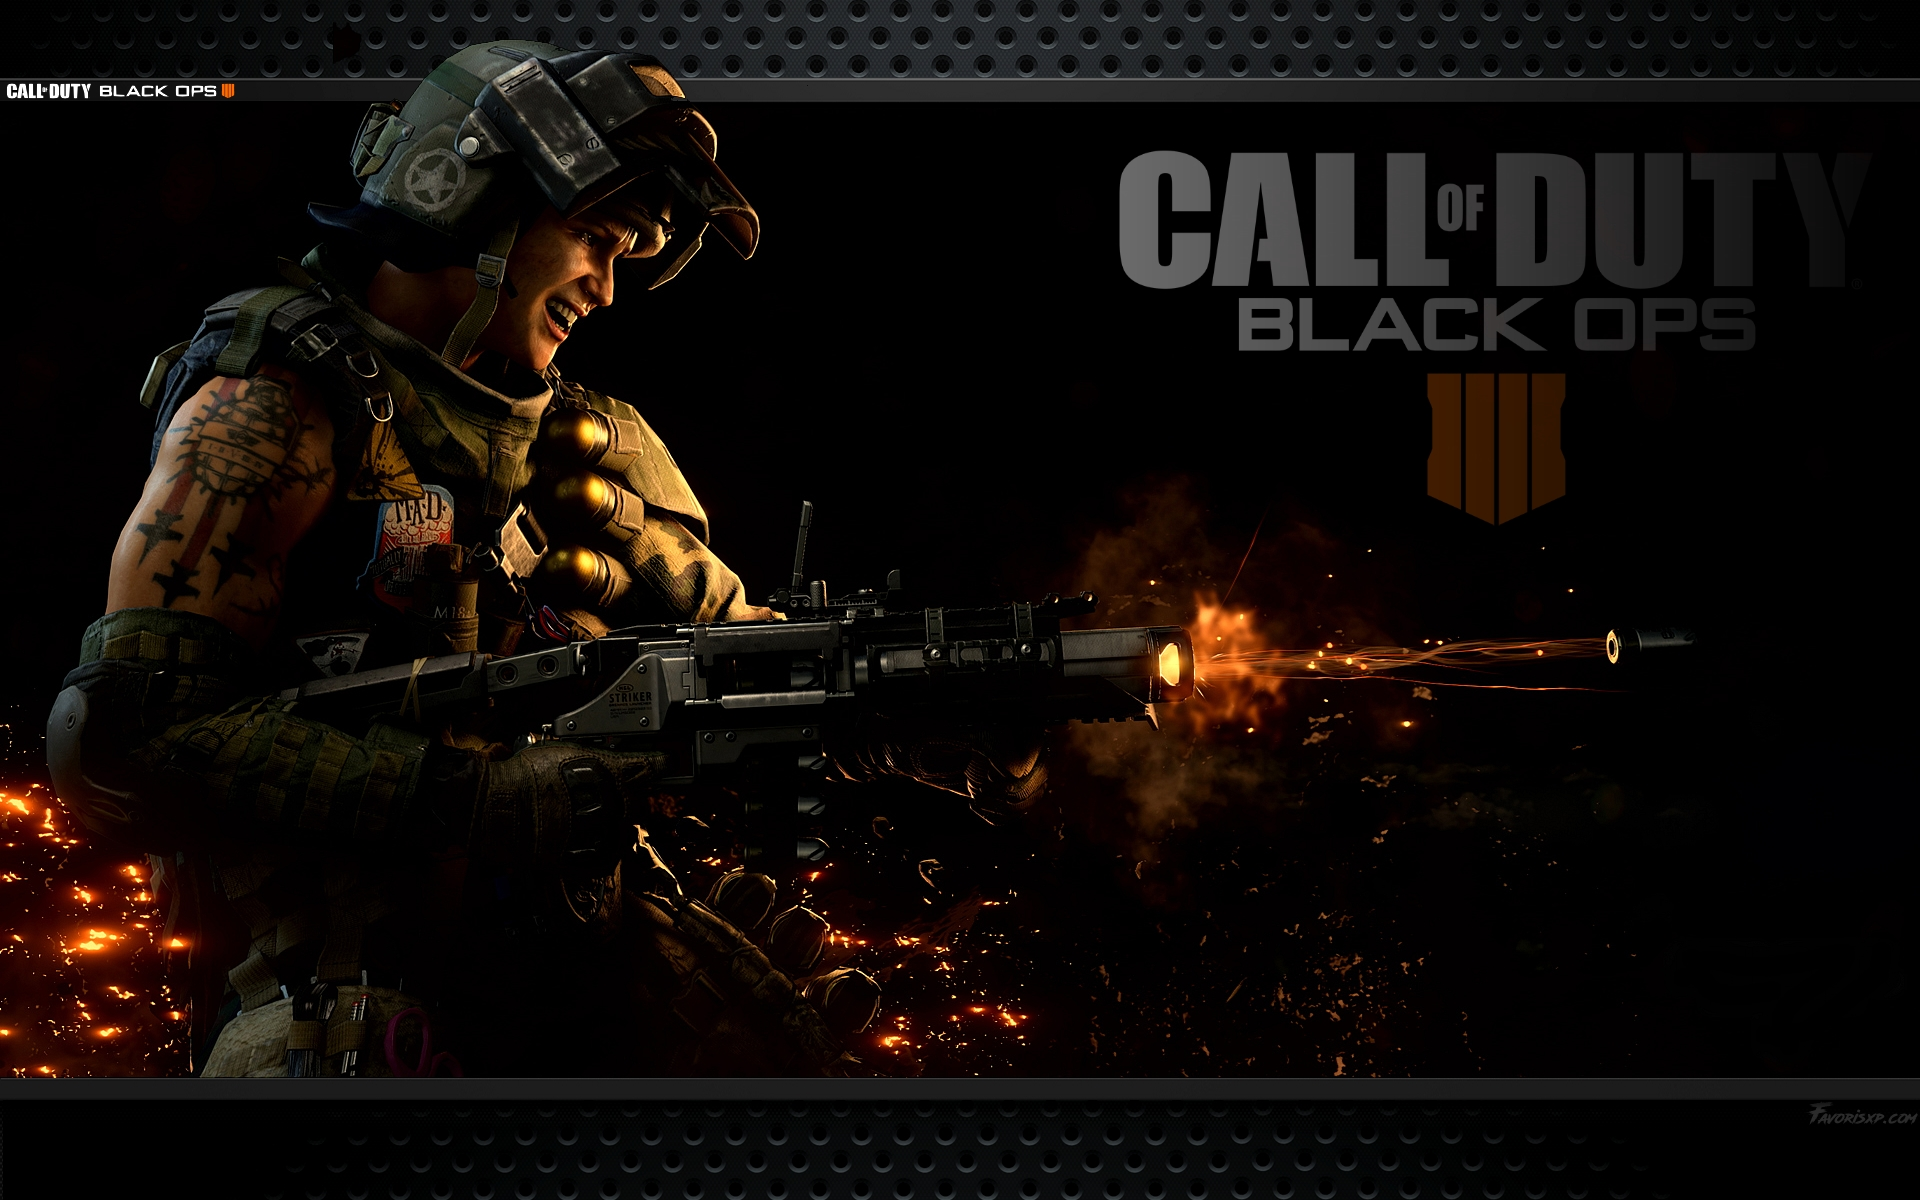 Call of Duty Modern Warfare Remastered PC telecharger torrent. Call of Duty Modern Warfare Remastered – PC 4. By Jeux Torrents on 27 juin 2016 PC. Une version remasterisée de Call of Duty 4: Modern Warfare, intitulé Modern Warfare Remastered, sortira ...